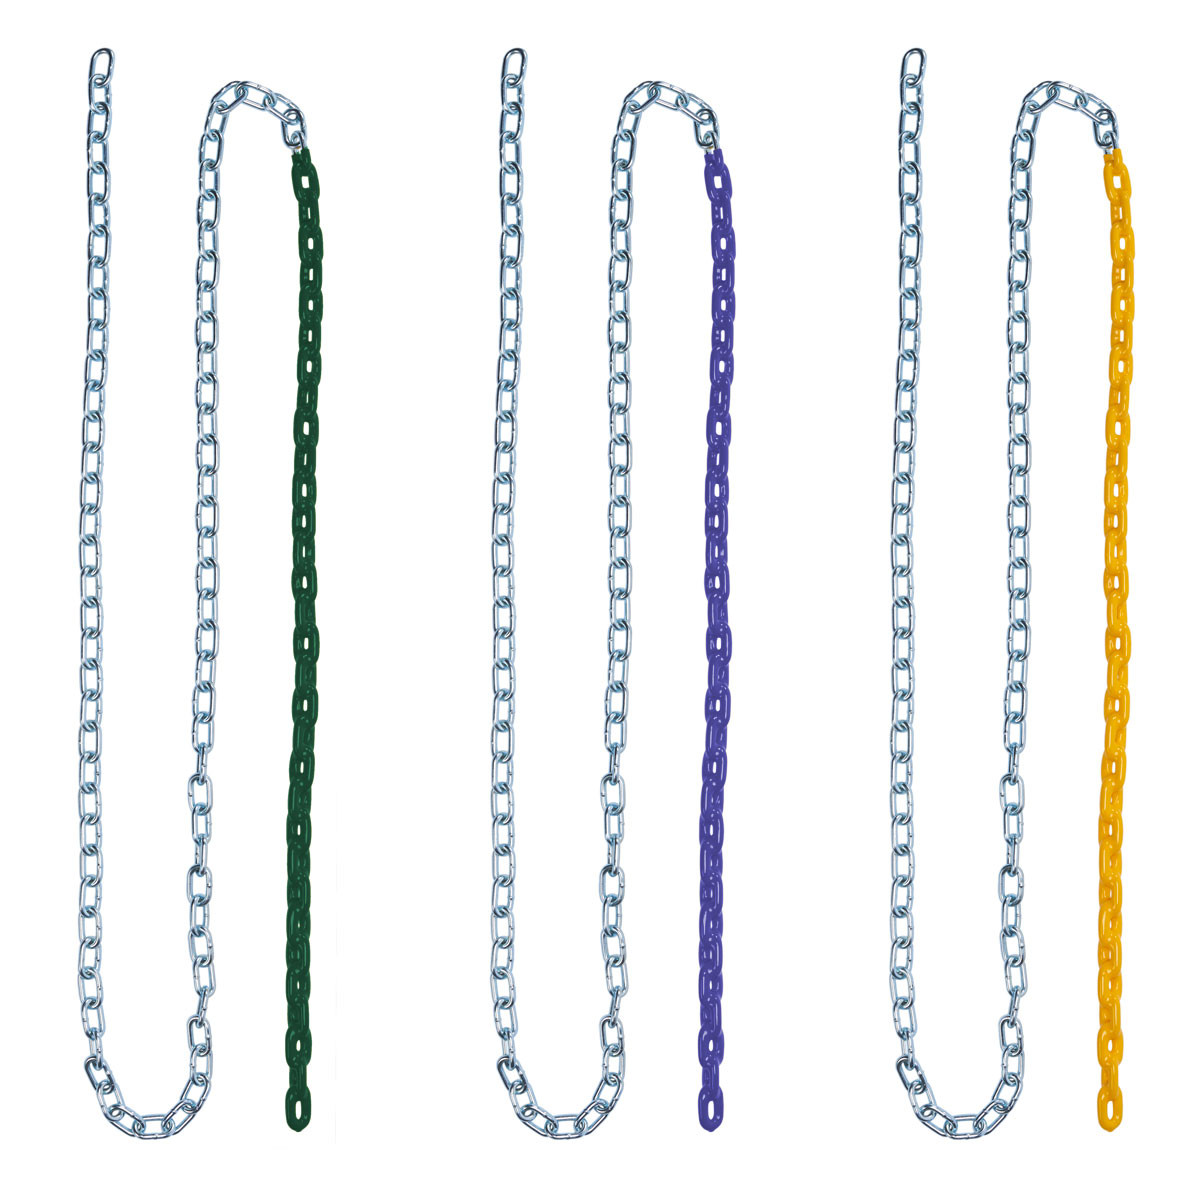 Plastisol Coated Swing Chain - Blue, Green, Yellow